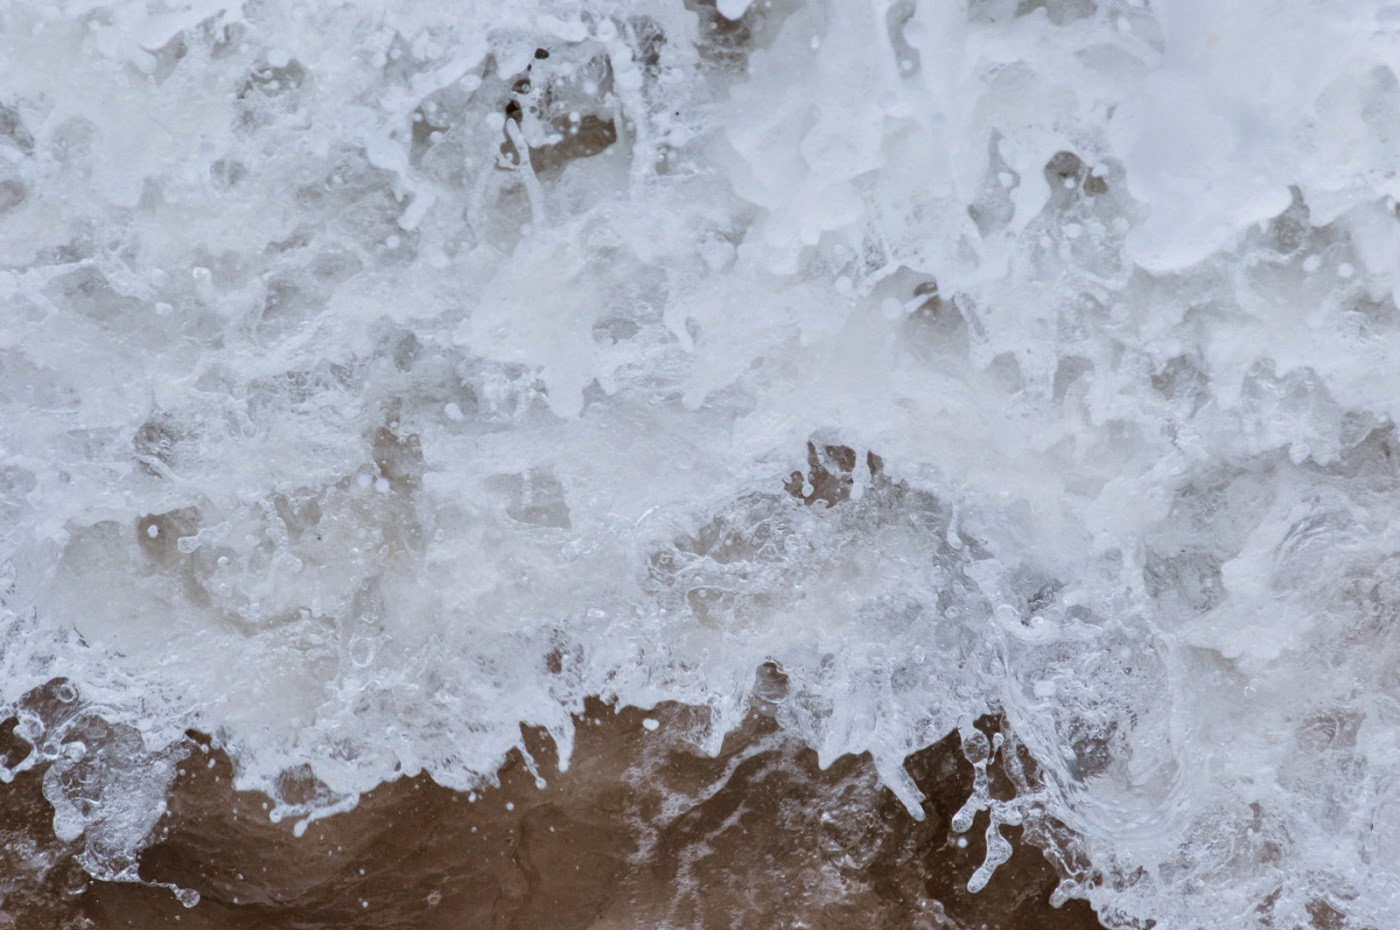 surge, abstract, abstraction, storm, high tide, tim macauley, graphic, sea, water, Anglesea, Australia, timothy Macauley, you won't see this at MoMA, storm surge, clash, detail